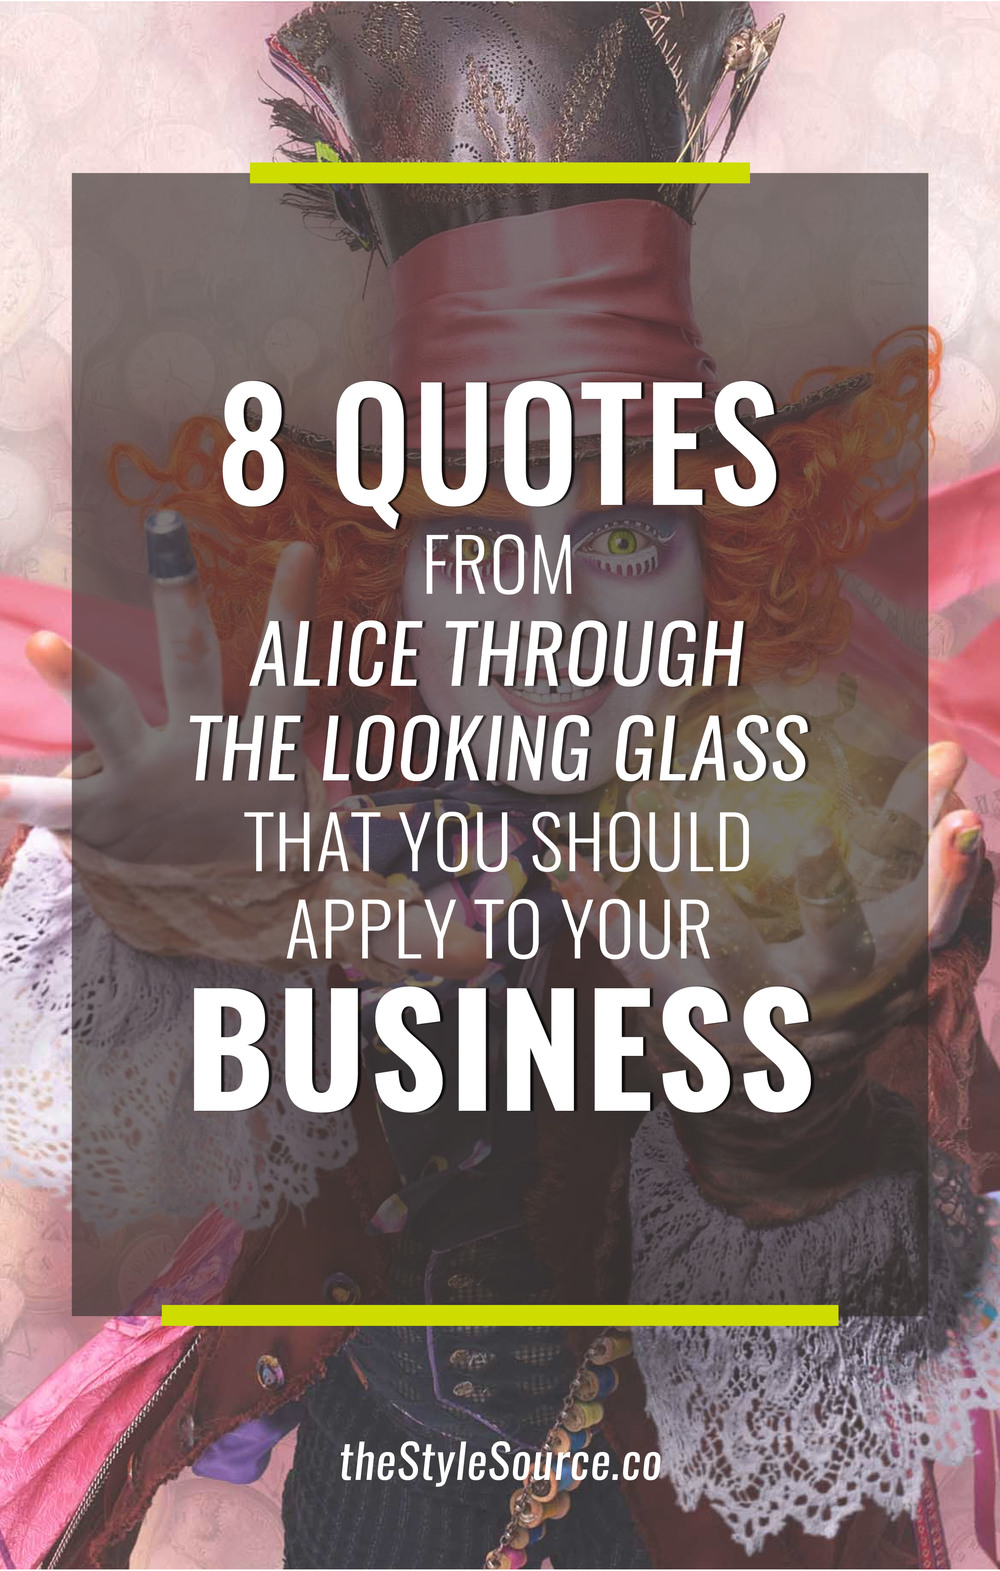 Through The Looking Glass Quotes Inspiration 8 Quotes From Alice Through The Looking Glass That You Should